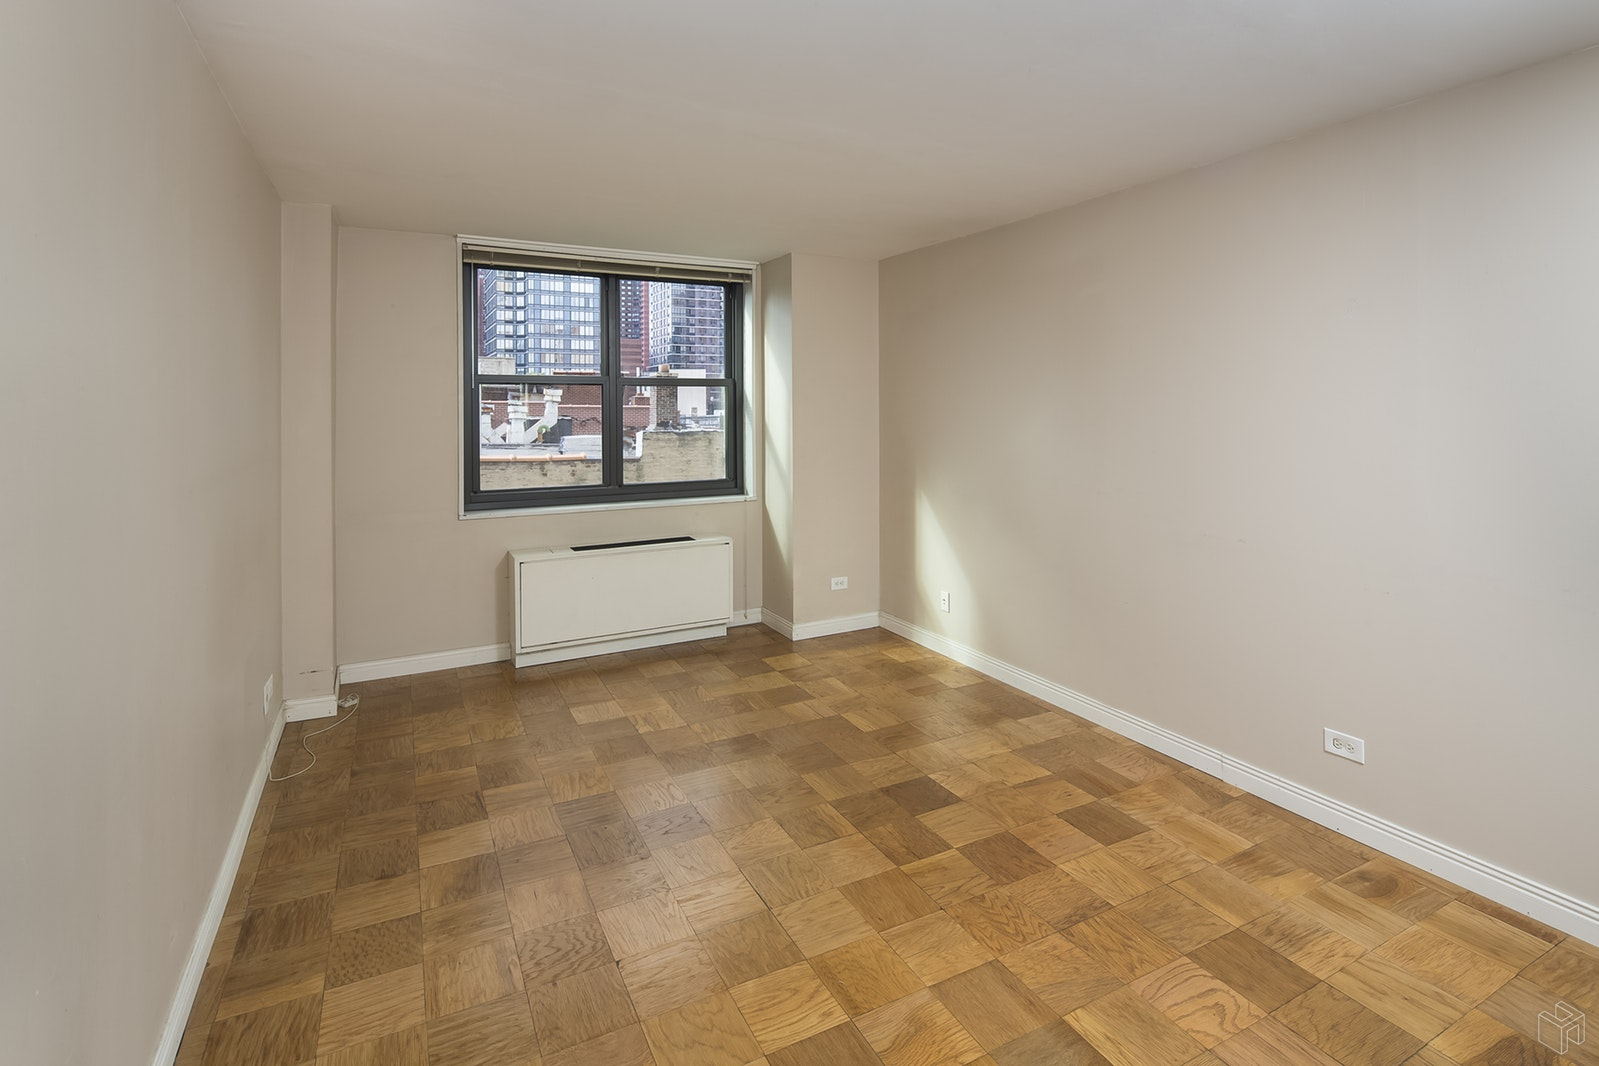 340 East 93rd Street 7k, Upper East Side, NYC, 10128, $654,500, Sold Property, Halstead Real Estate, Photo 8